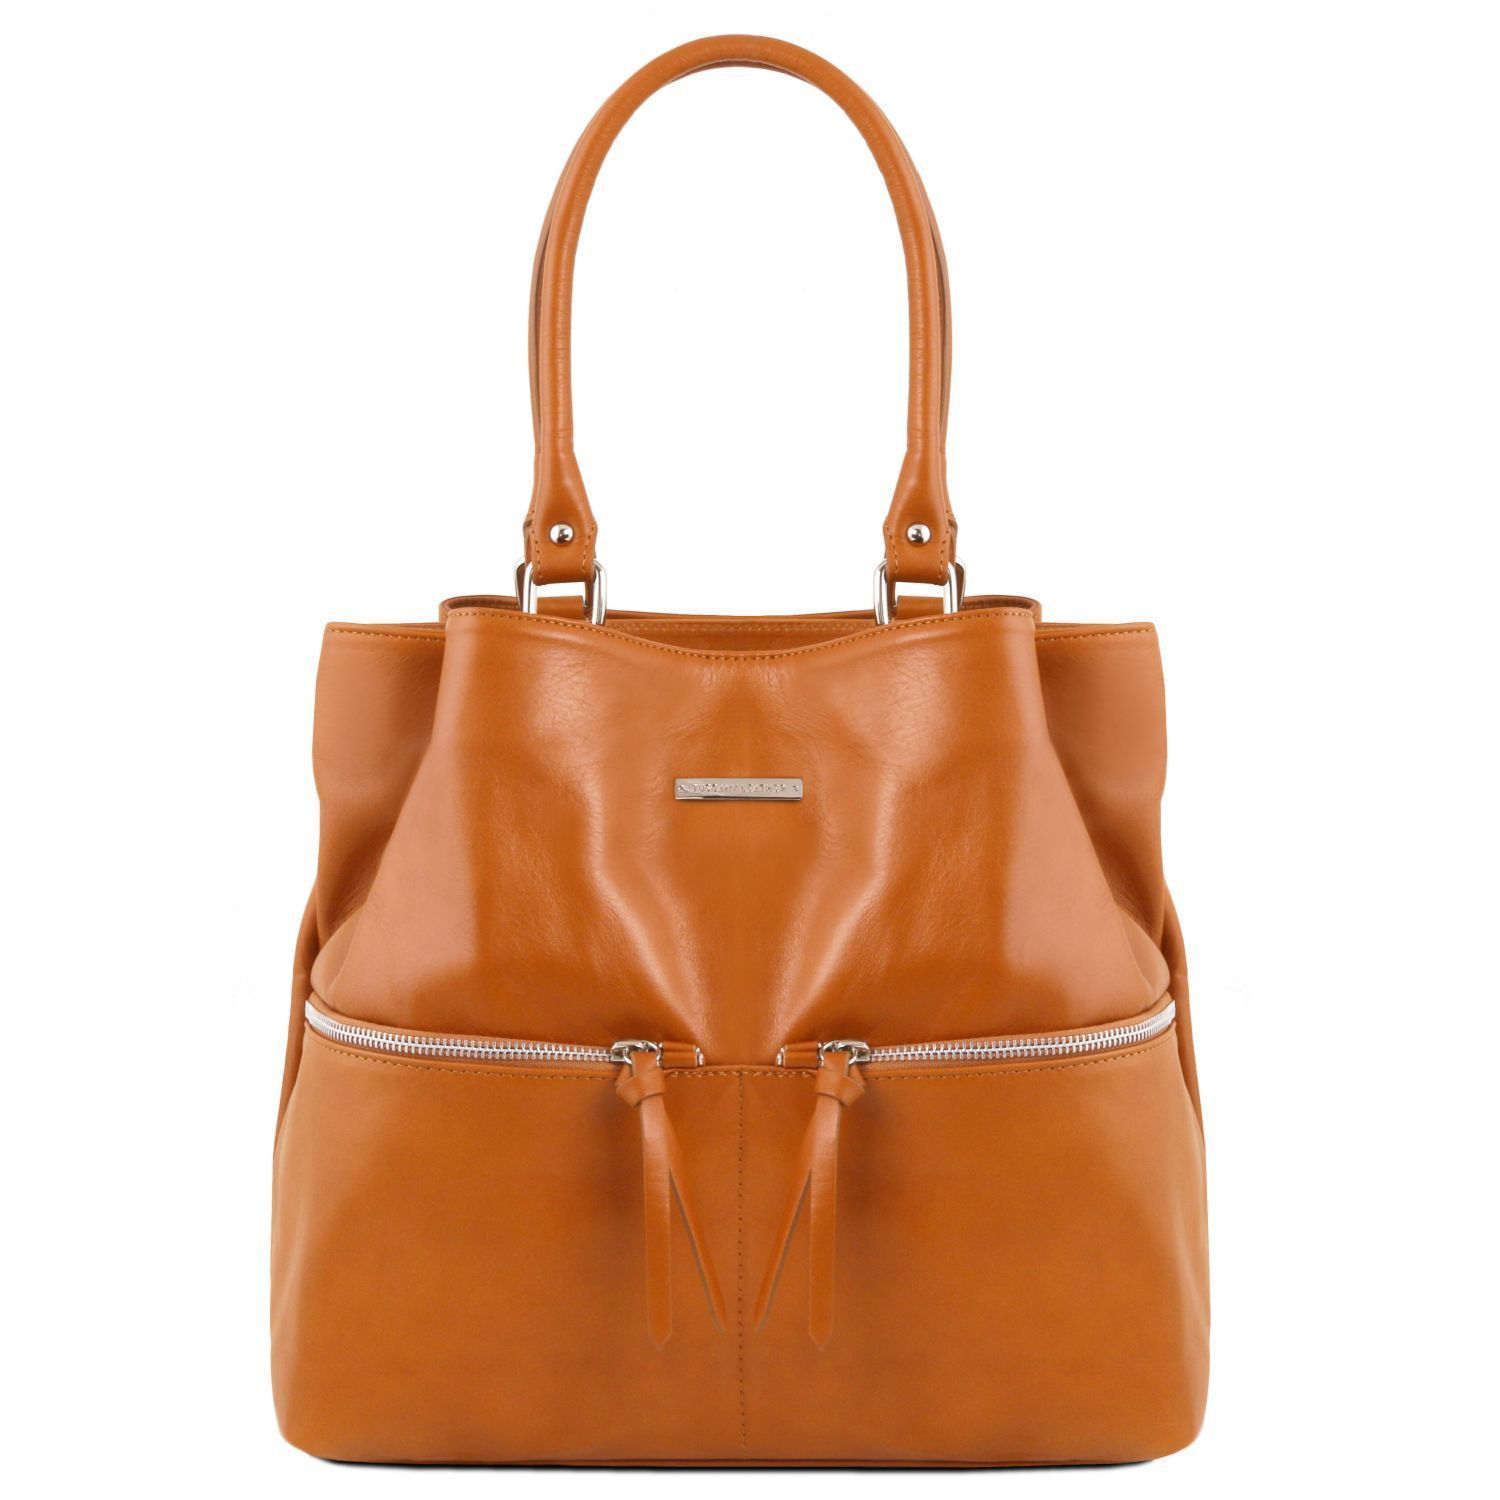 Tuscany Leather TL Bag Leather Shoulder Bag With Front Pockets Ladies Shoulder Bag Tuscany Leather Cognac